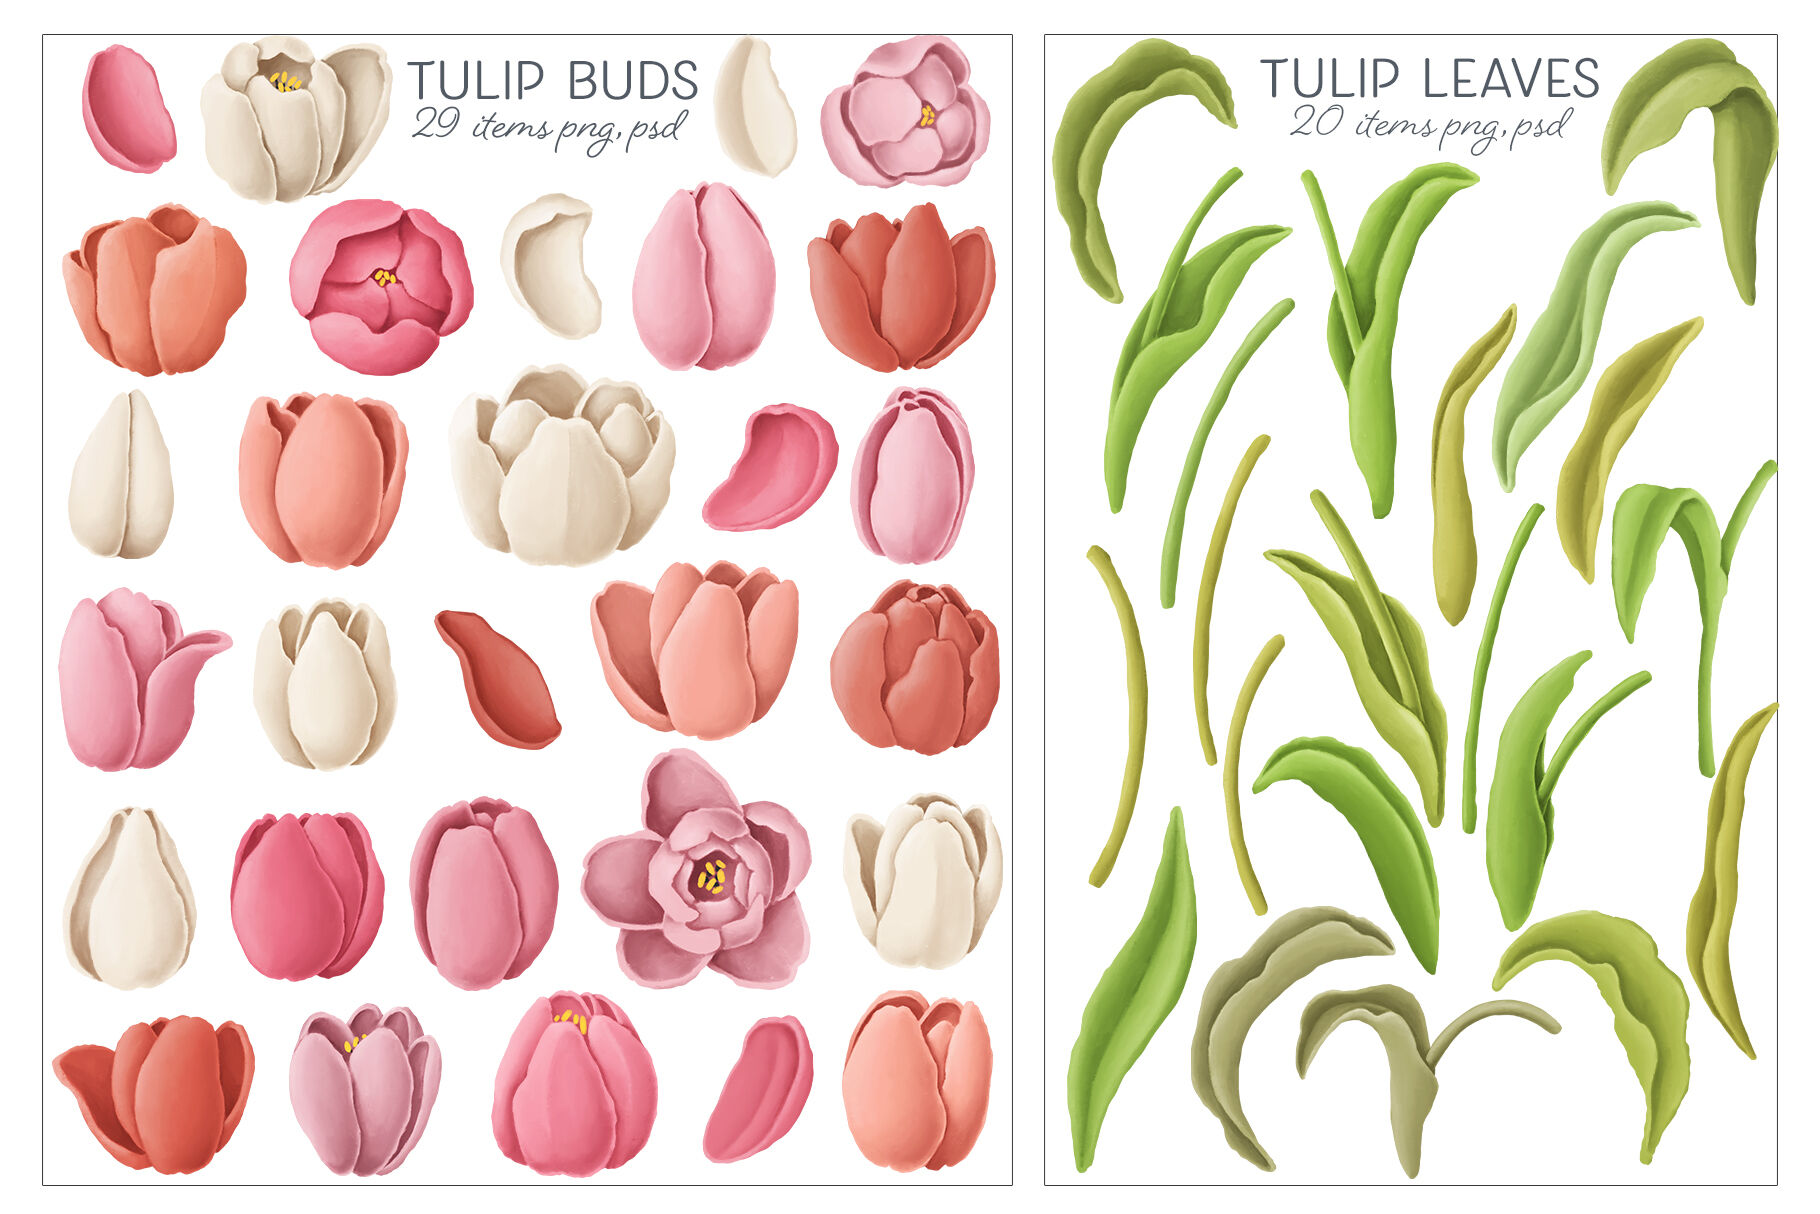 Tulips Flowers Patterns Borders By An Kle Thehungryjpeg Com